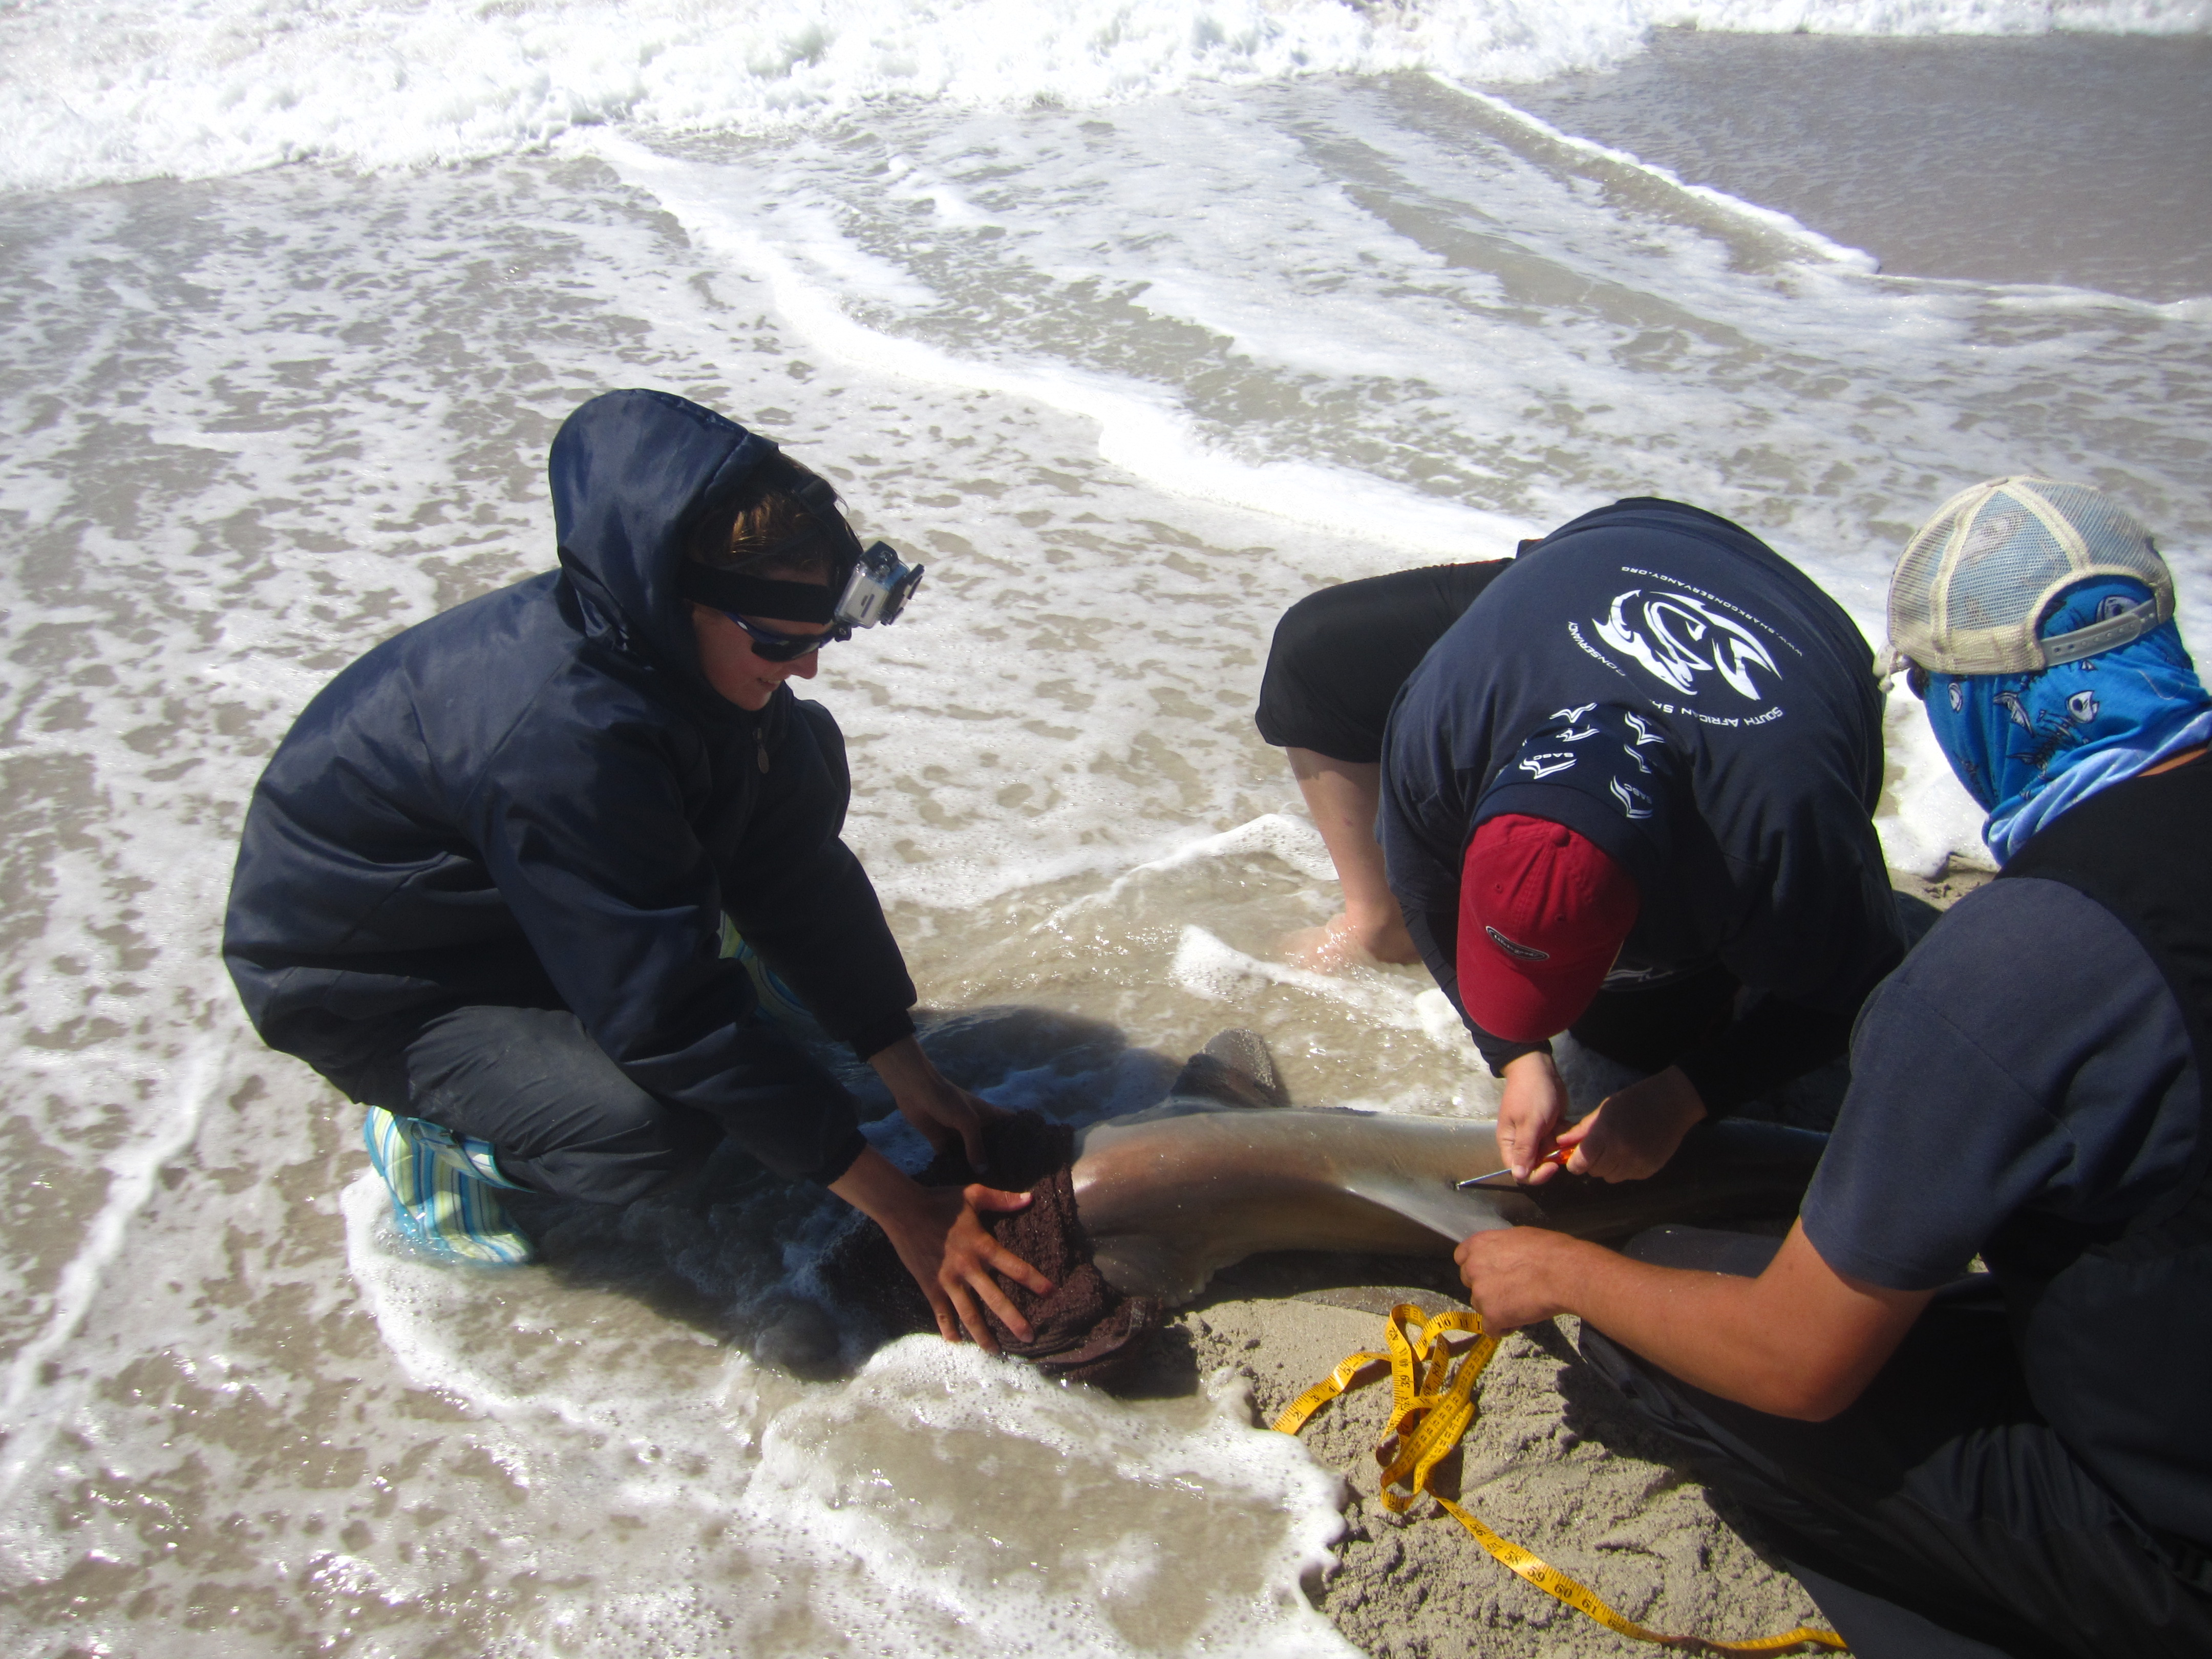 The RecFishSA team works quickly in the shallow water to minimize stress